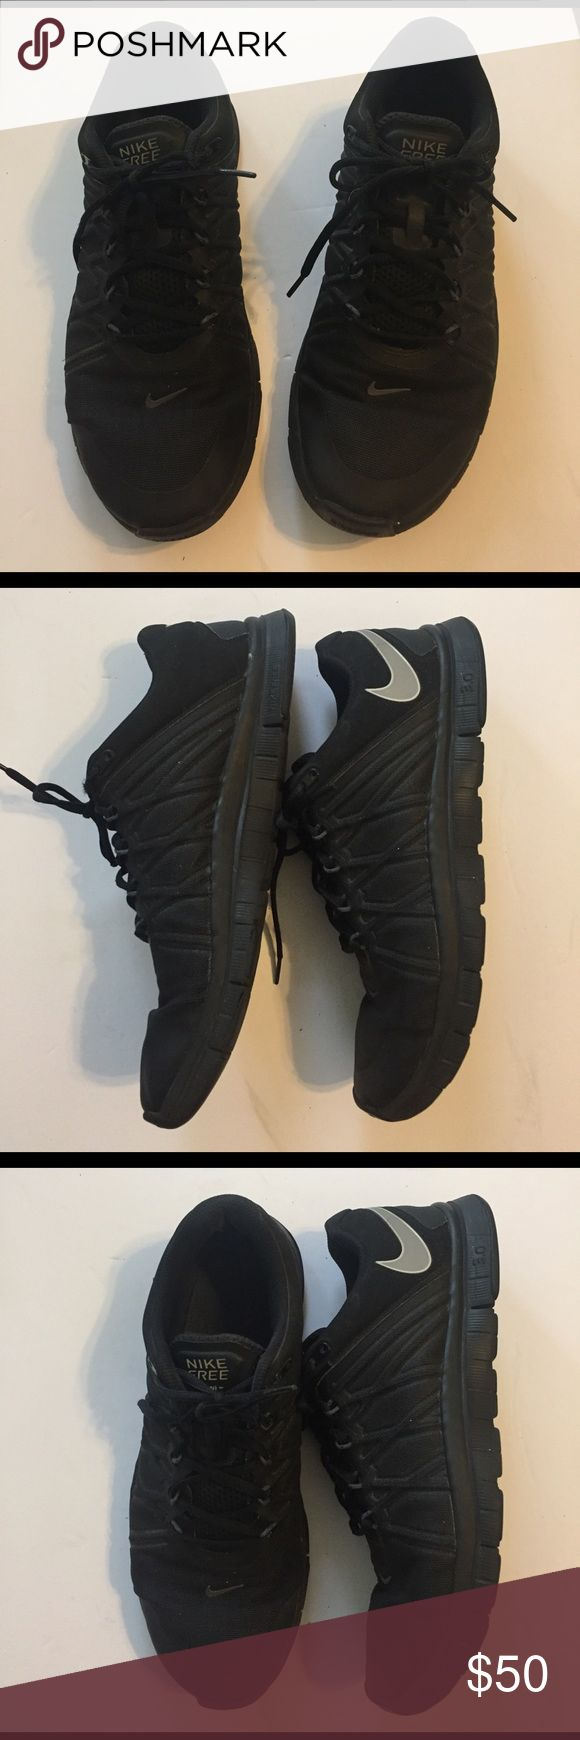 Nike free trainer men's size 13 Excellent preowned condition Nike Shoes Athletic Shoes